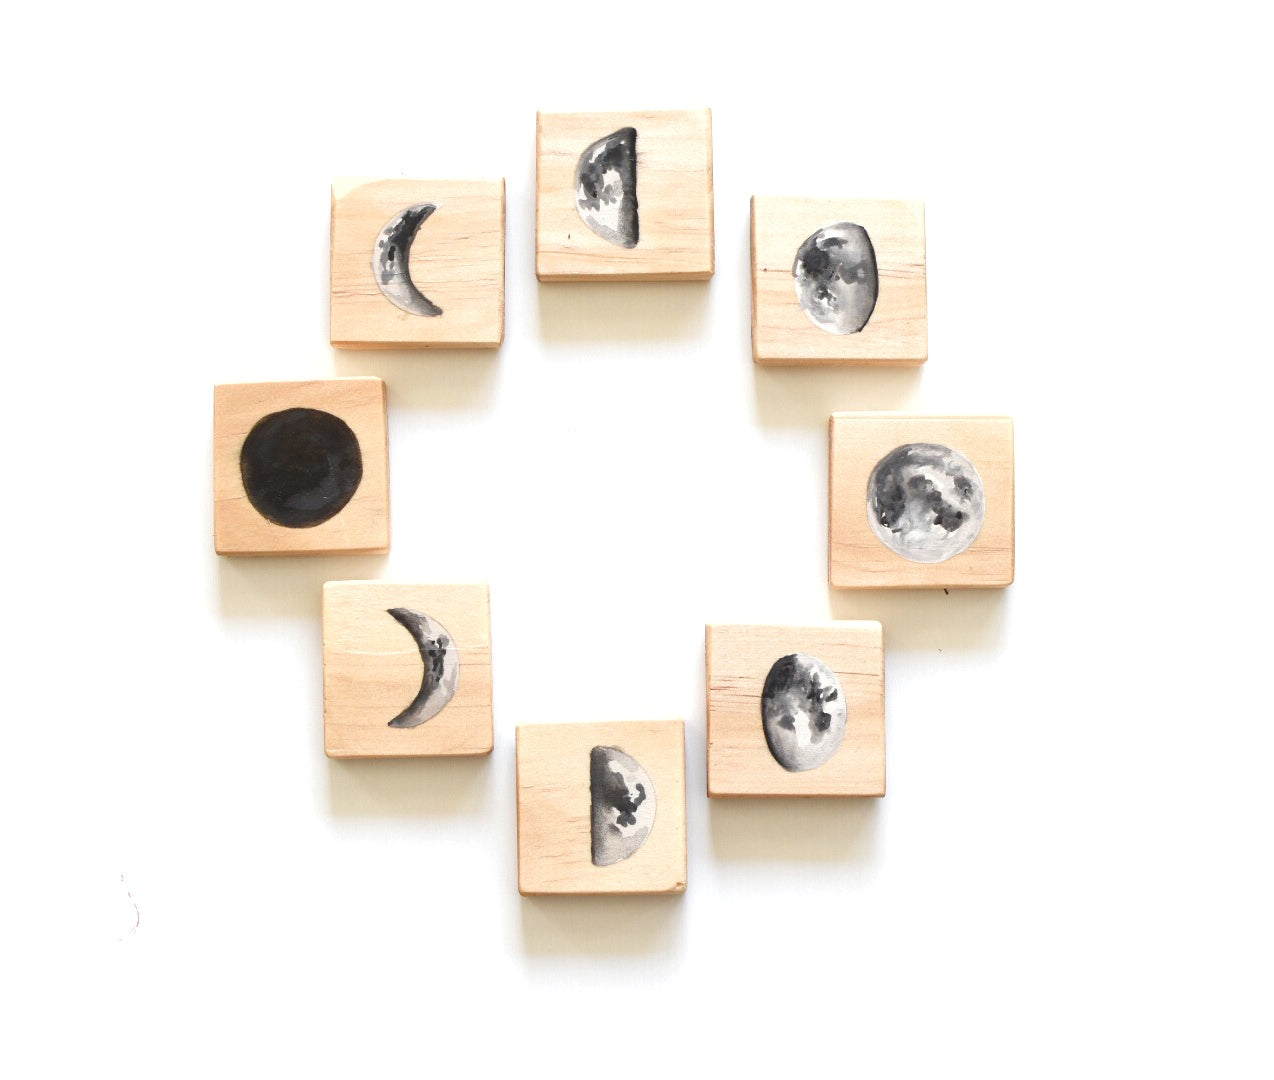 Moon Phases lIlustrated Wooden Learning Tile Block Set